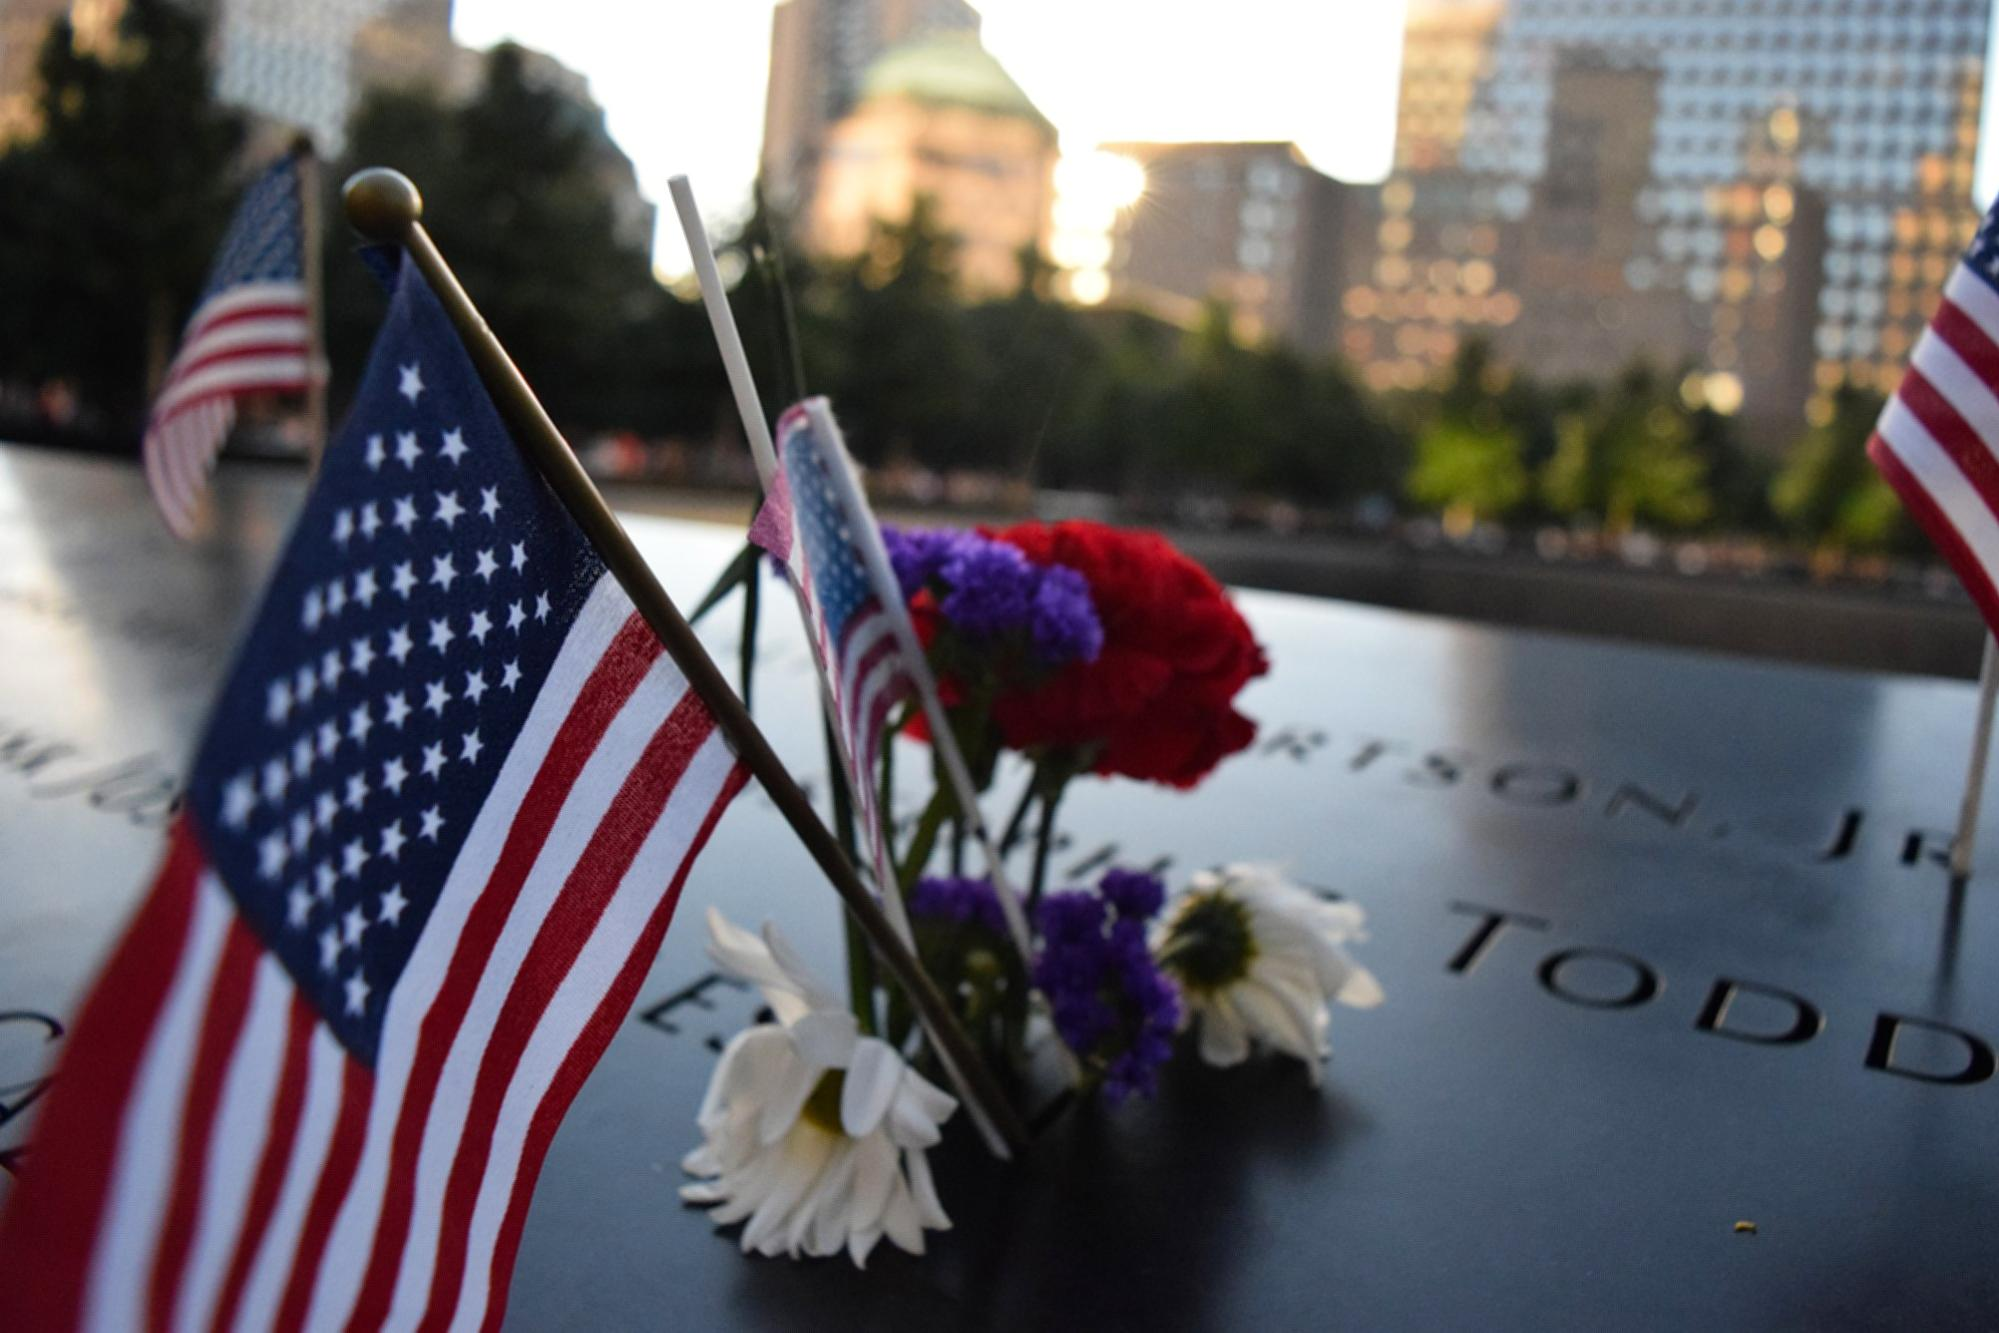 September 11 attacks: From 9/11s ashes, a new world took